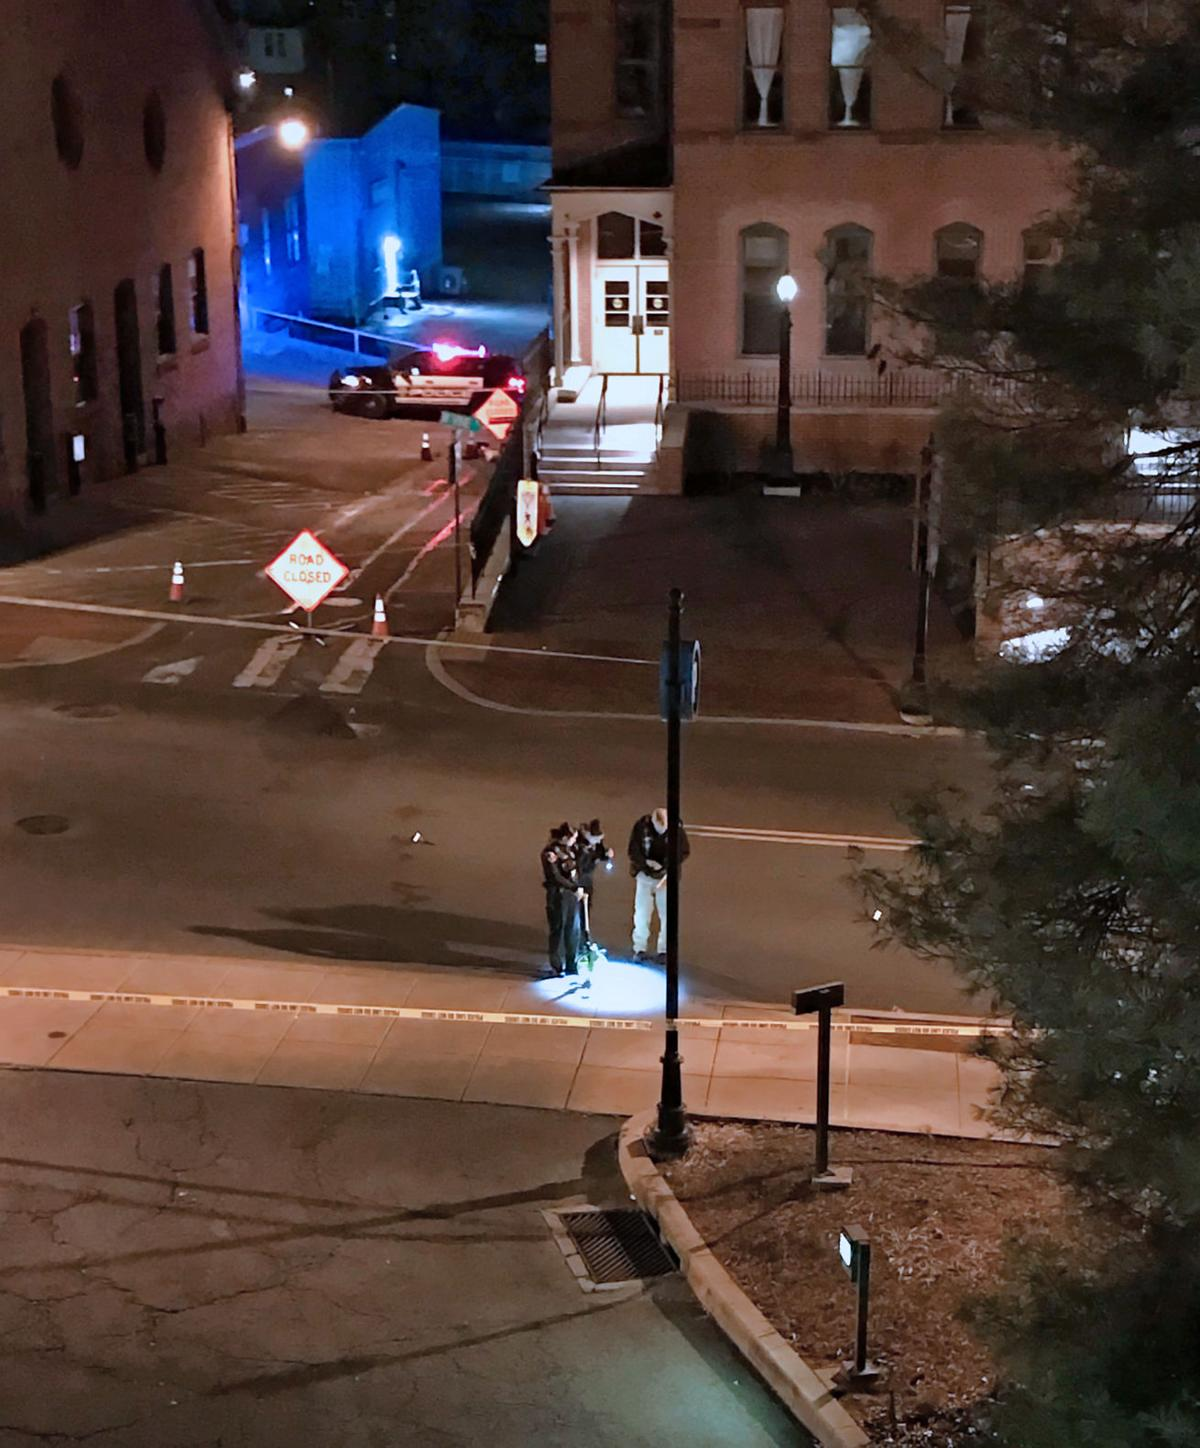 No arrests made in early morning shooting that left 2